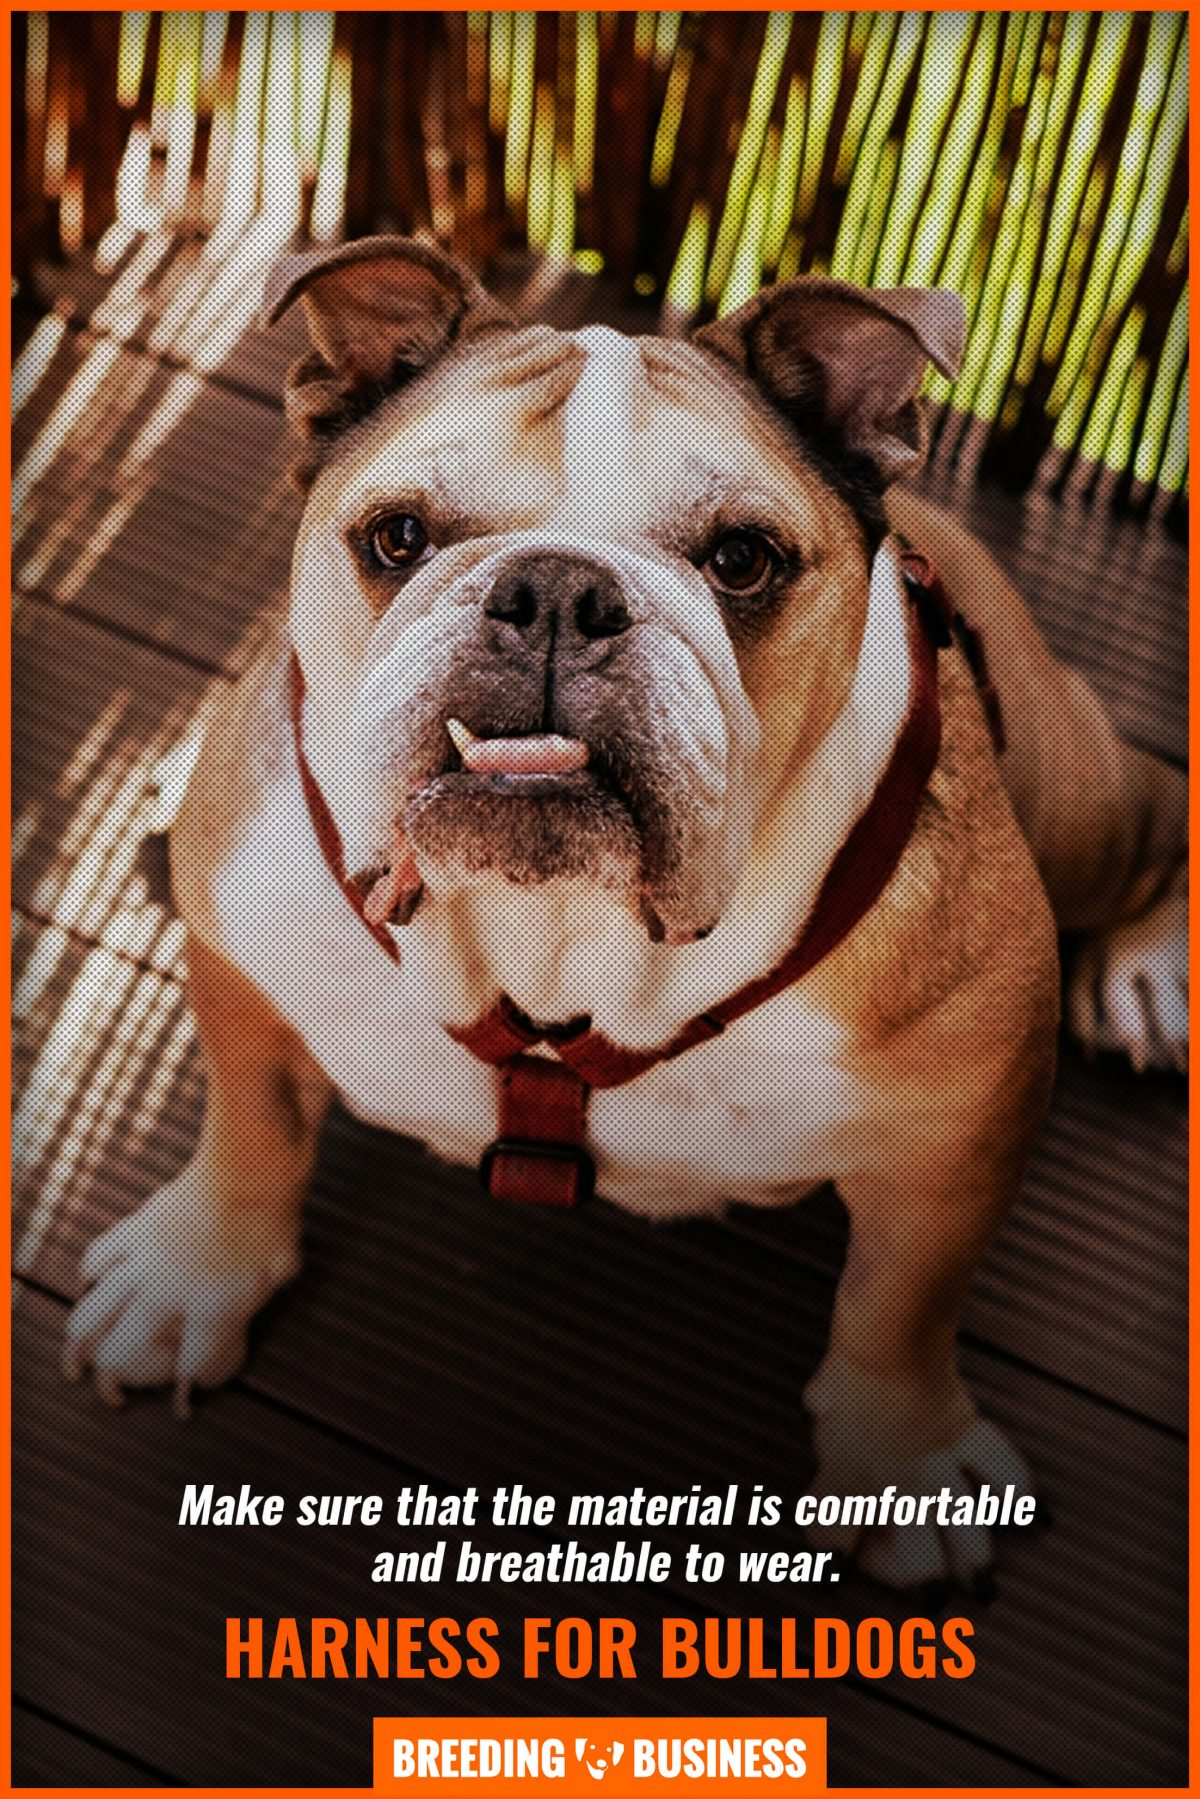 harness for bulldogs